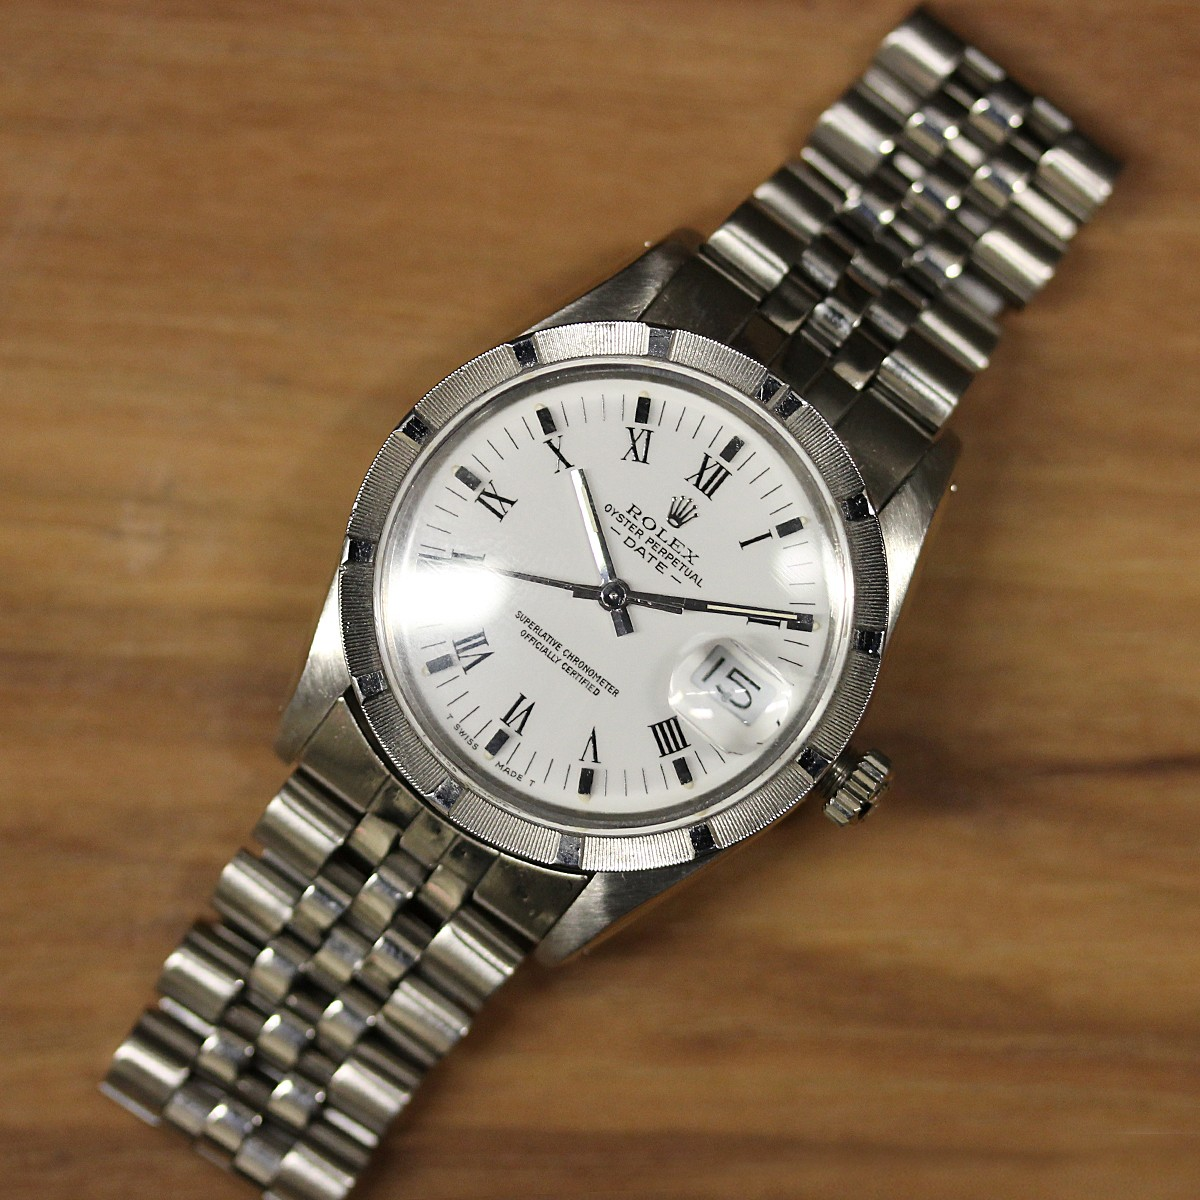 Stainless Steel 34mm Rolex Oyster Perpetual Circa 1985